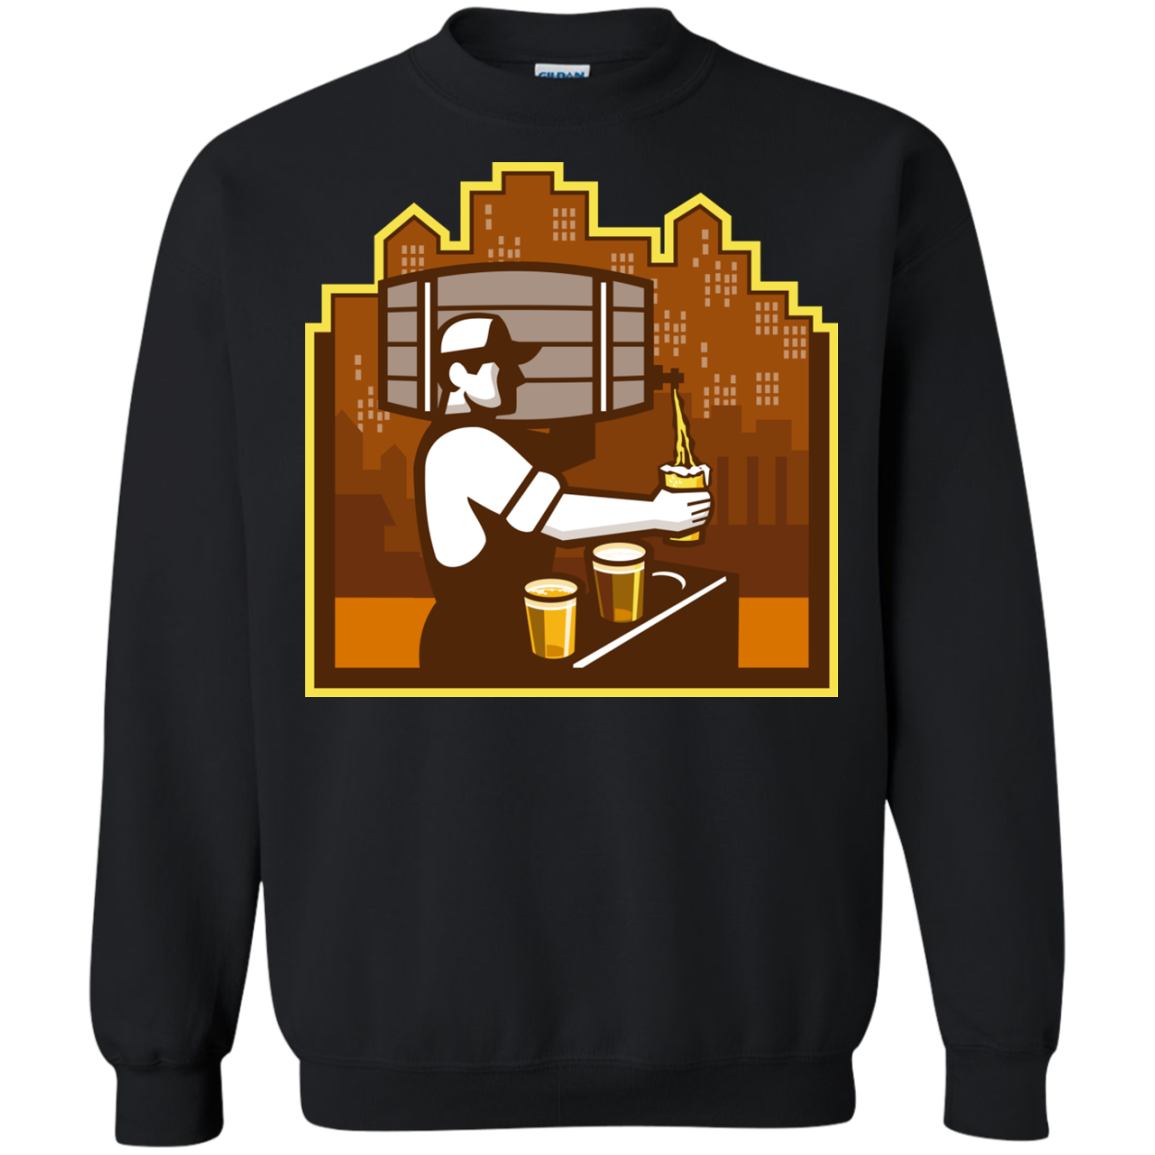 Bartender Pouring Beer Keg Cityscape Retro T-Shirt & Hoodie, Sweatshirt